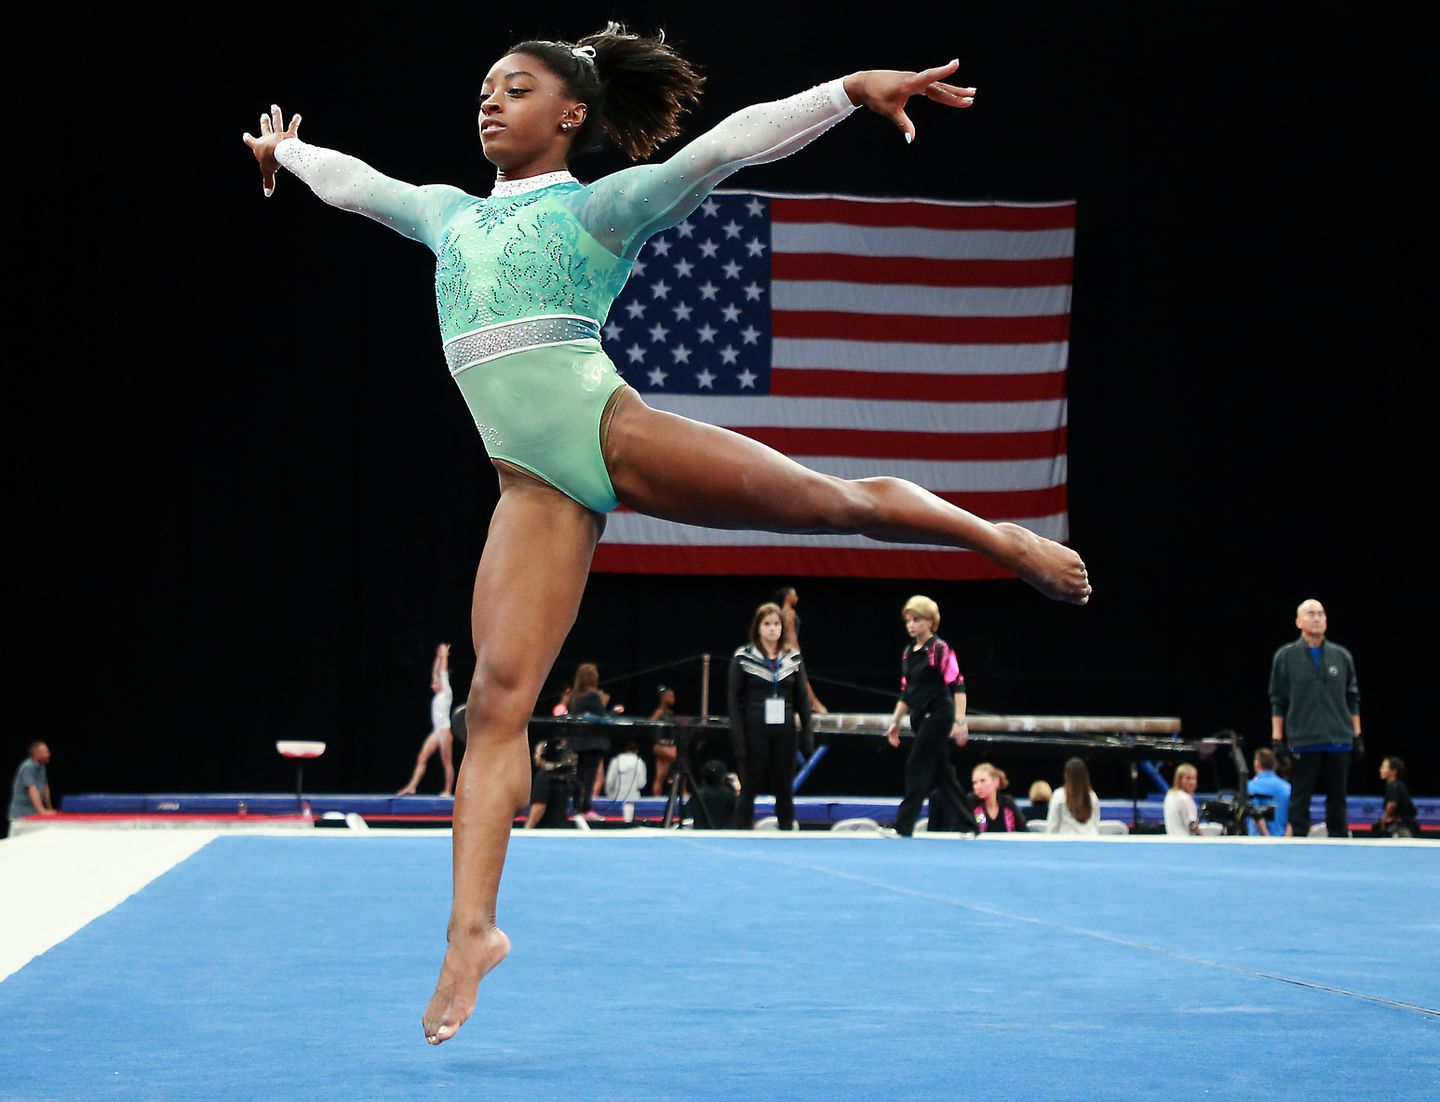 Simone Biles is the top gymnast